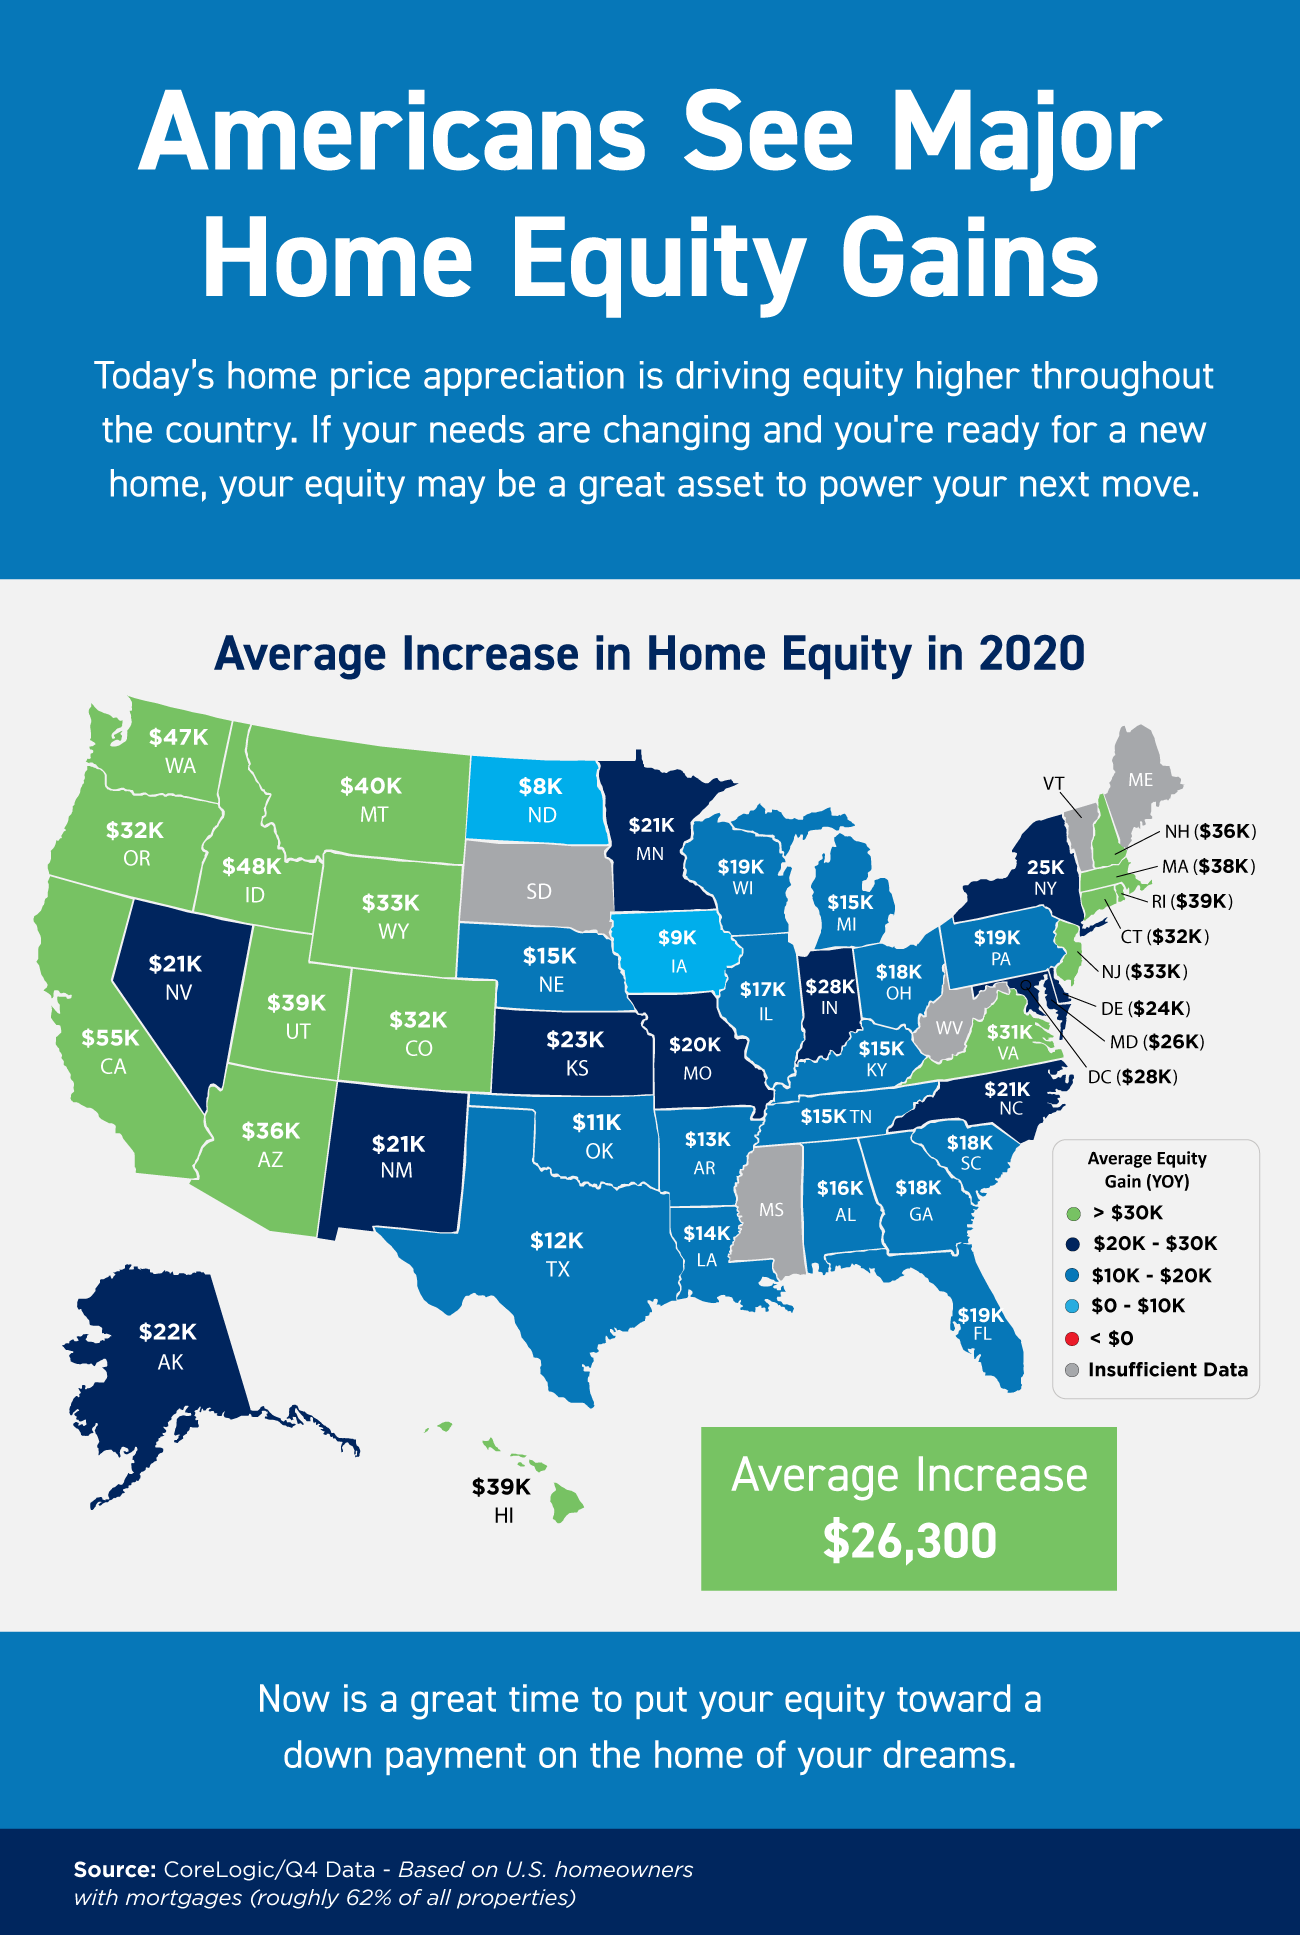 Americans See Major Home Equity Gains [INFOGRAPHIC].png